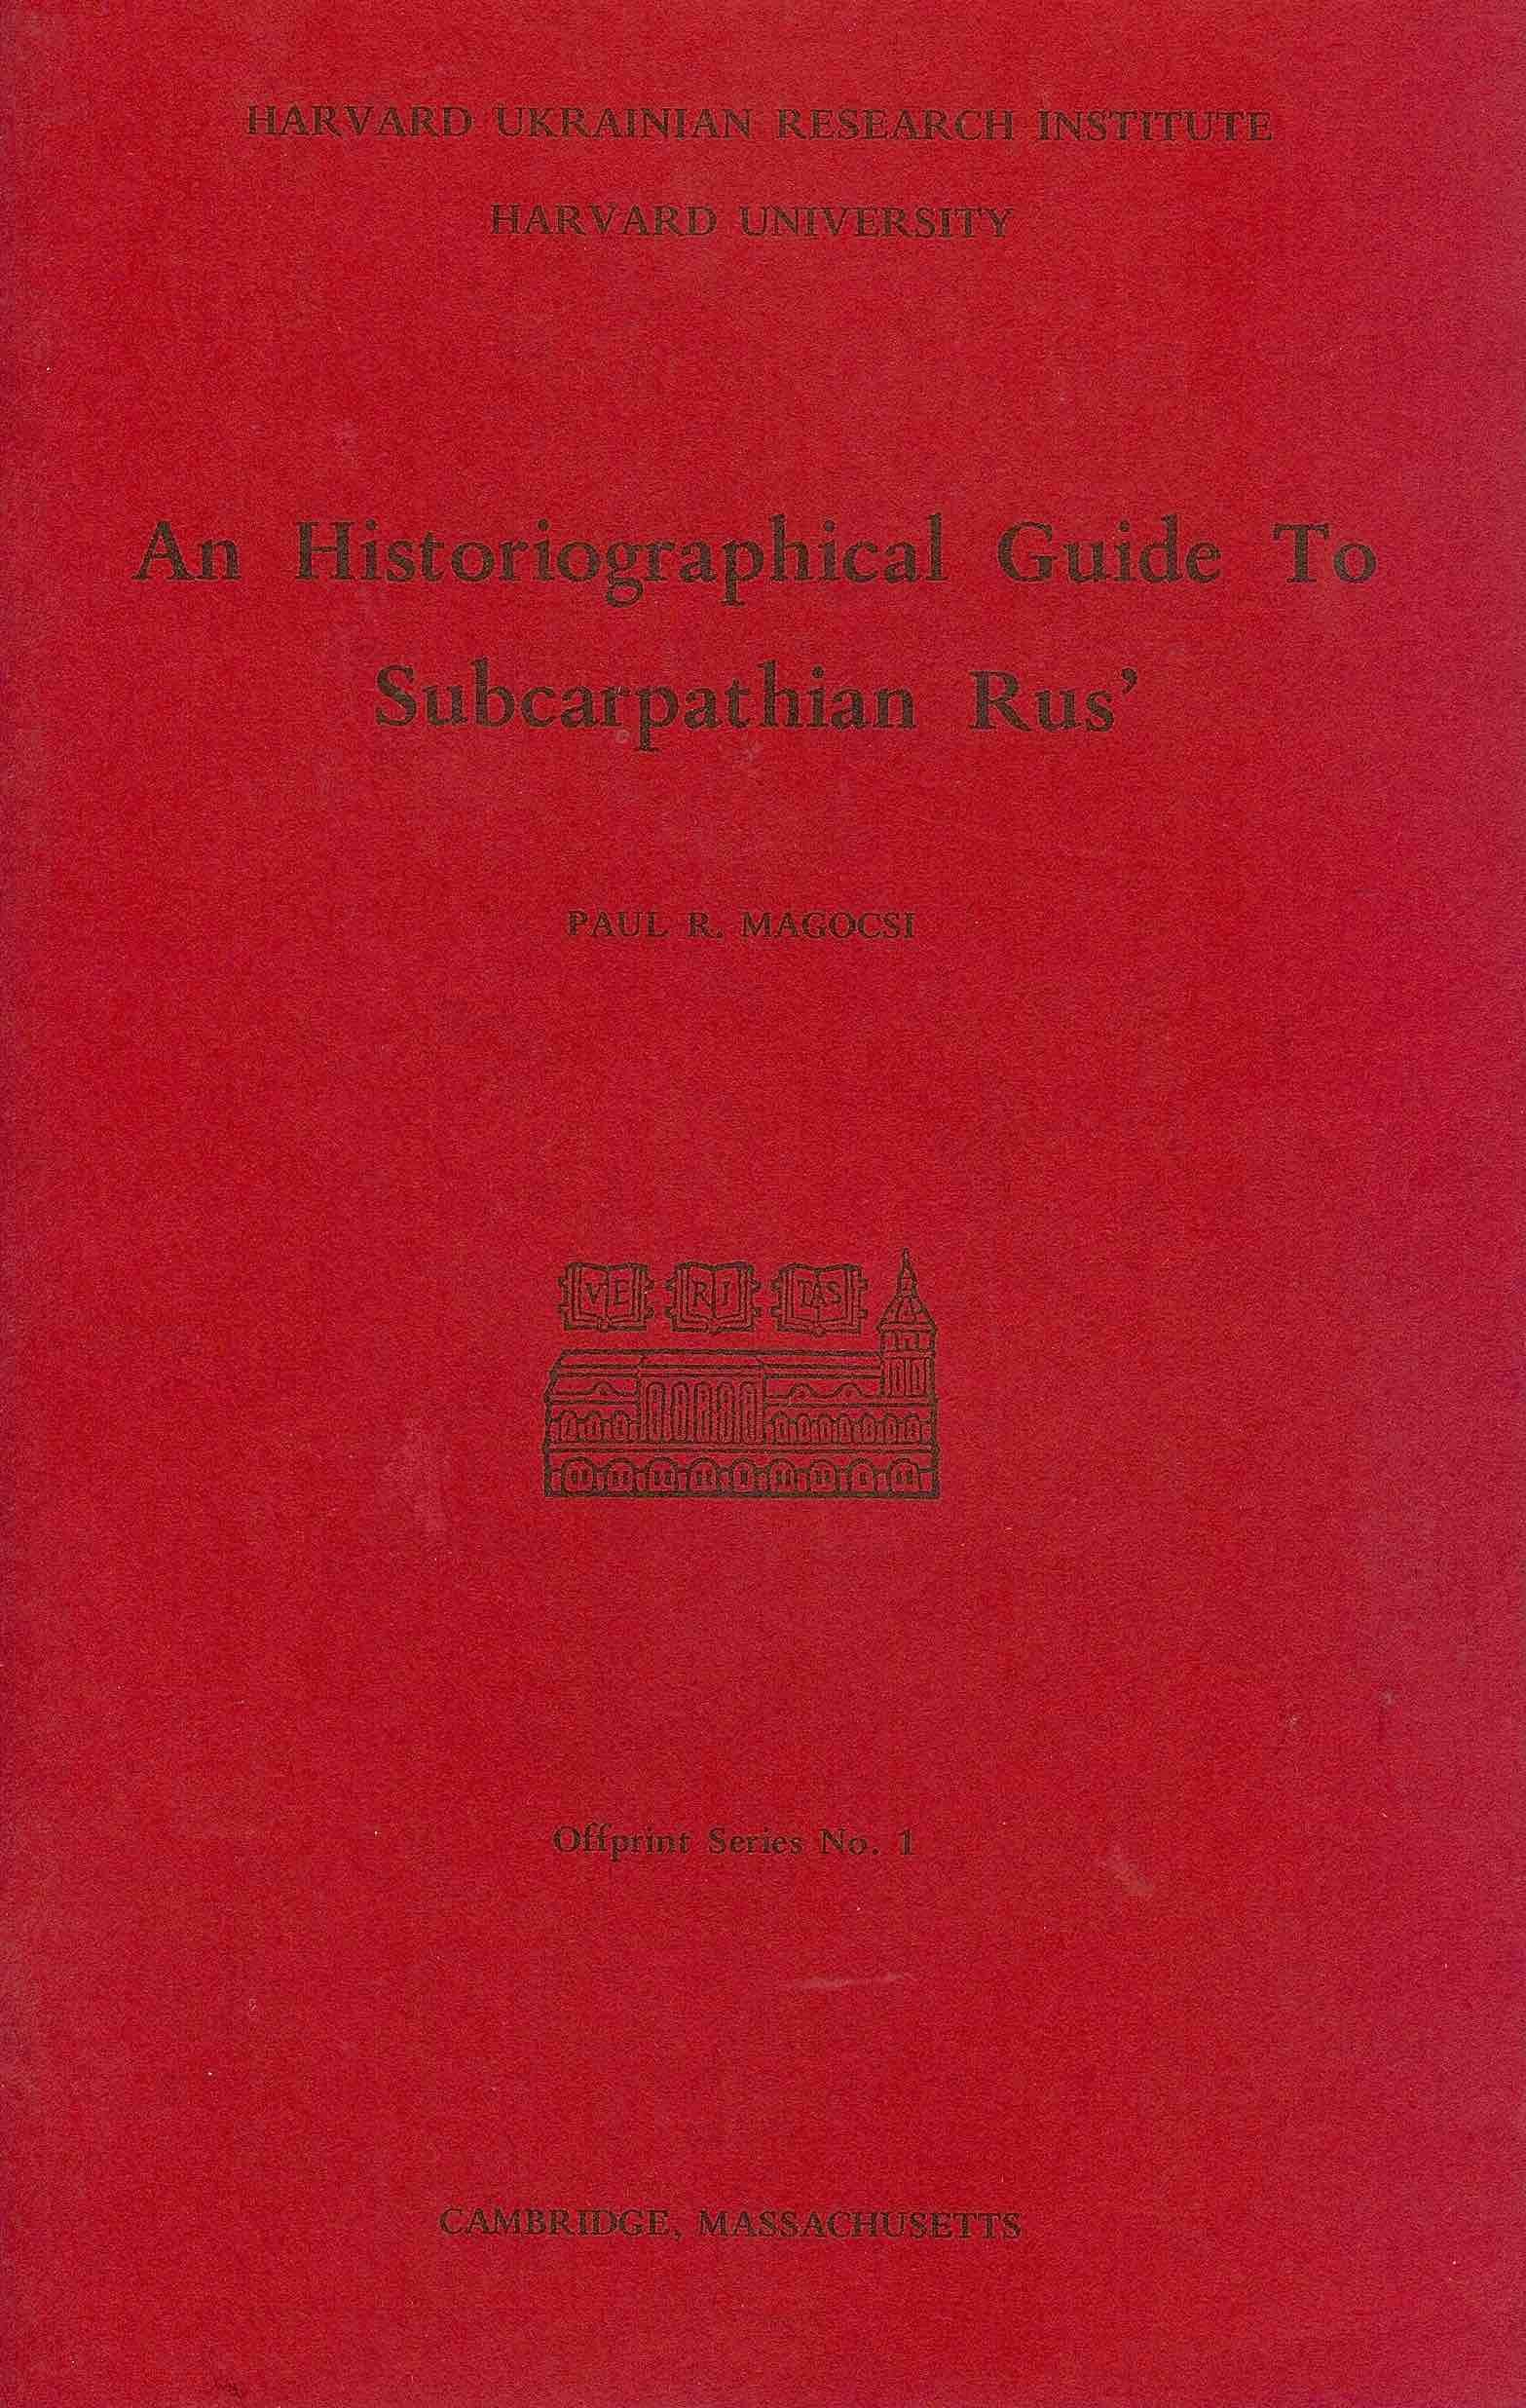 An Historiographic Guide to Subcarpathian Rus'